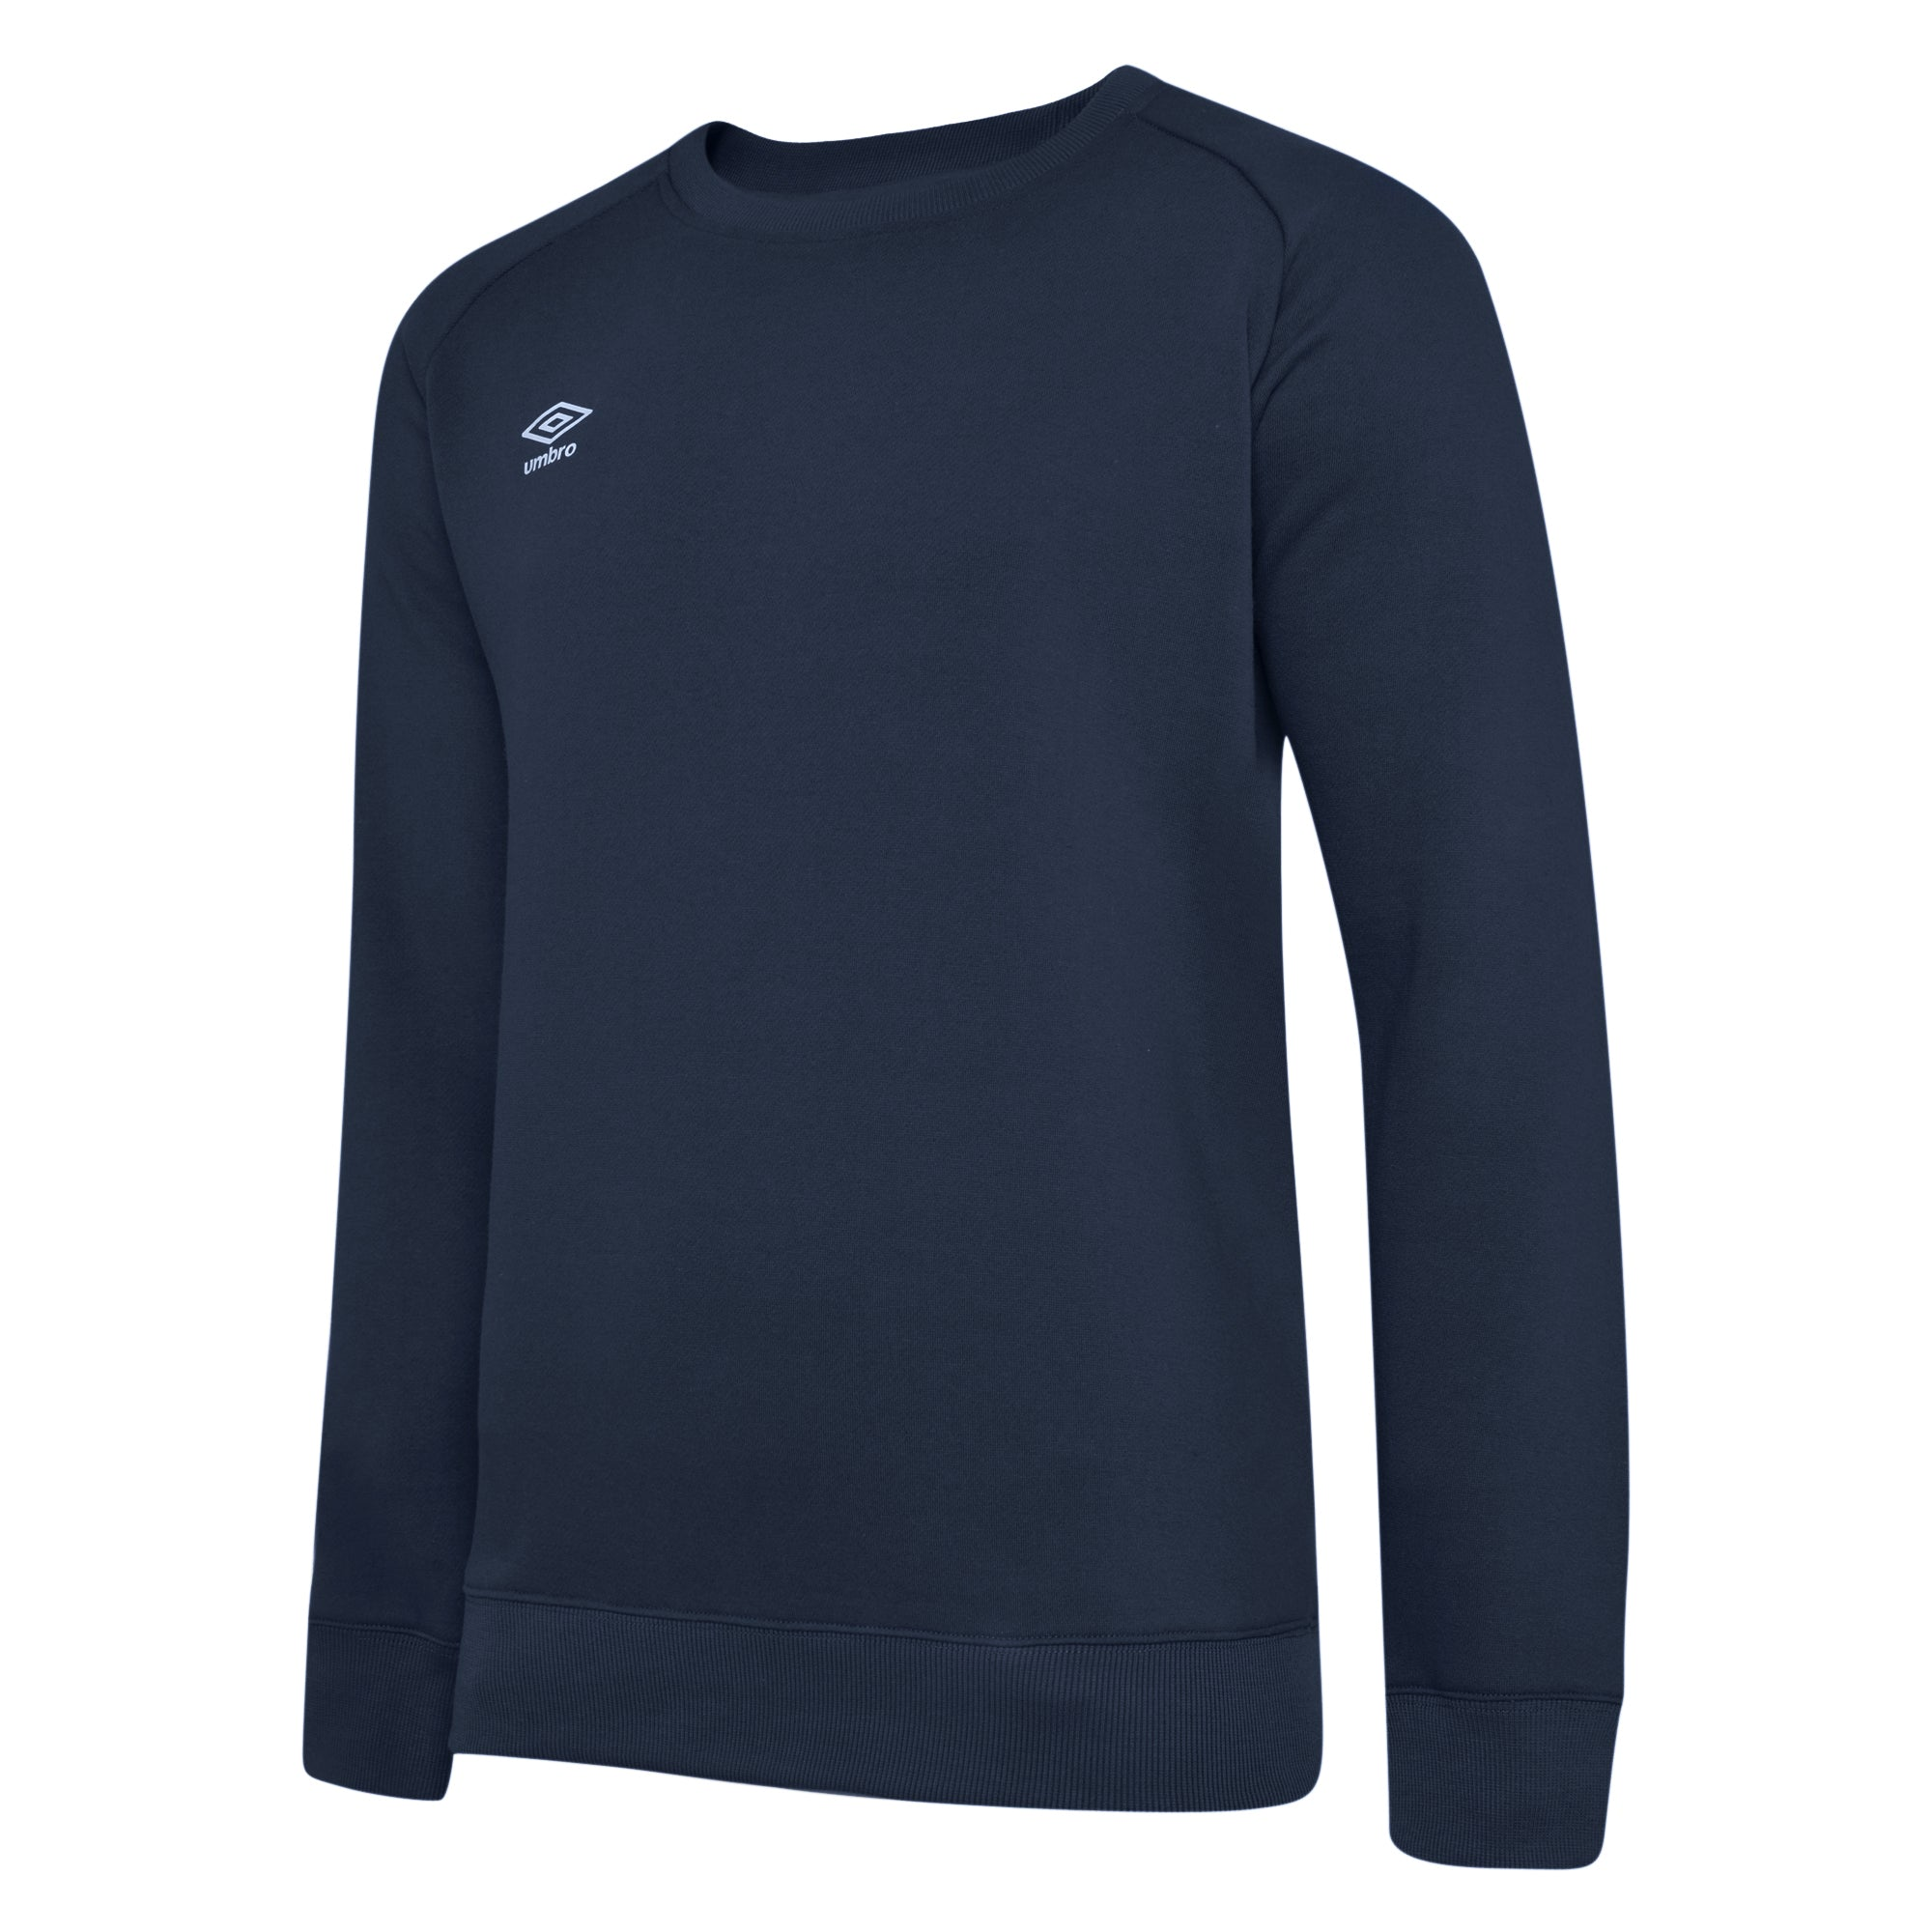 Umbro Club Leisure Sweat - TW Navy/White